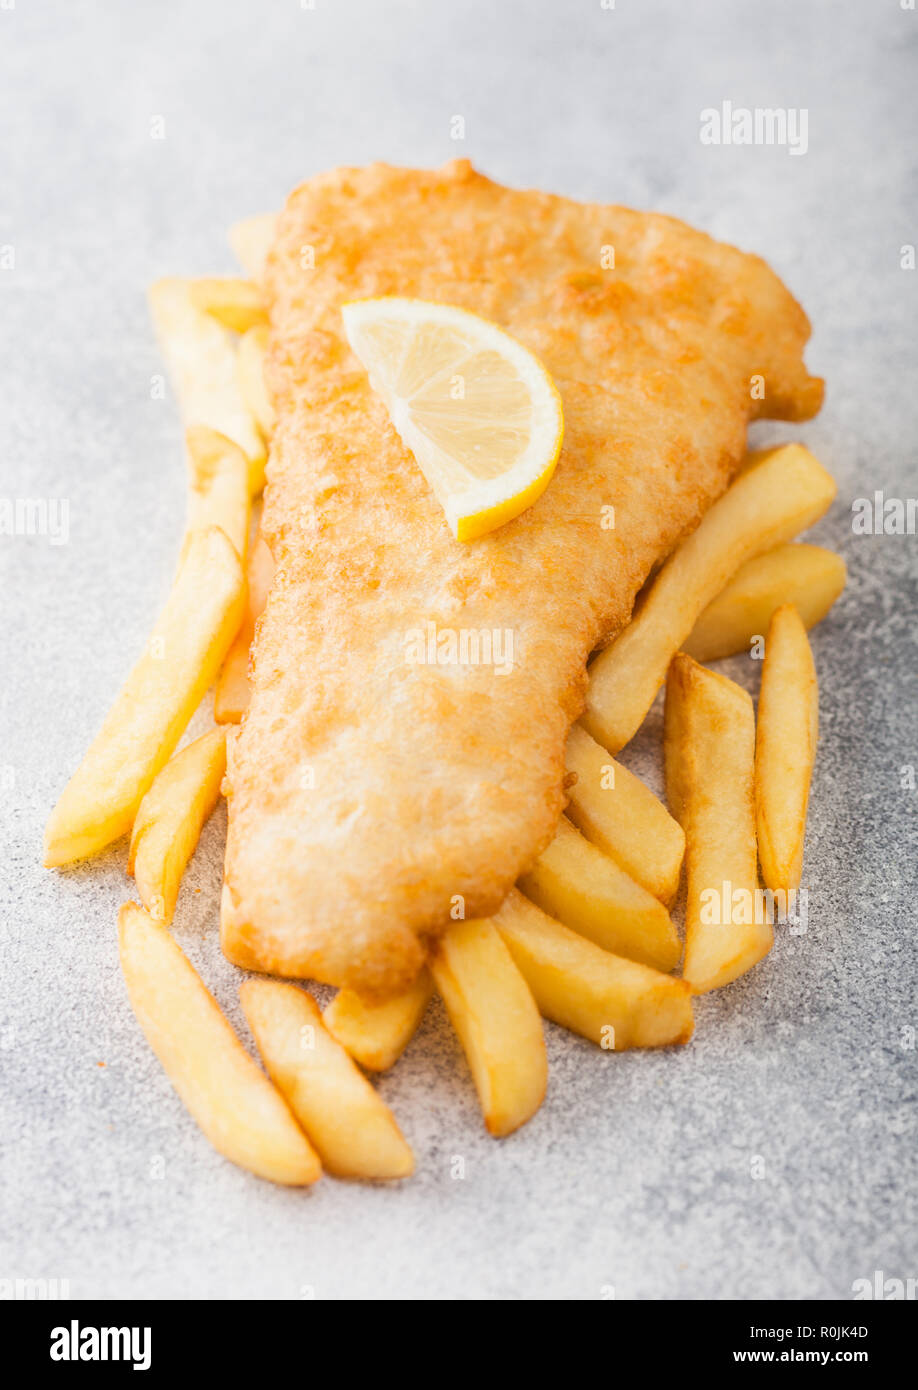 Traditional British Fish and Chips with lemon slice on white stone background. Stock Photo